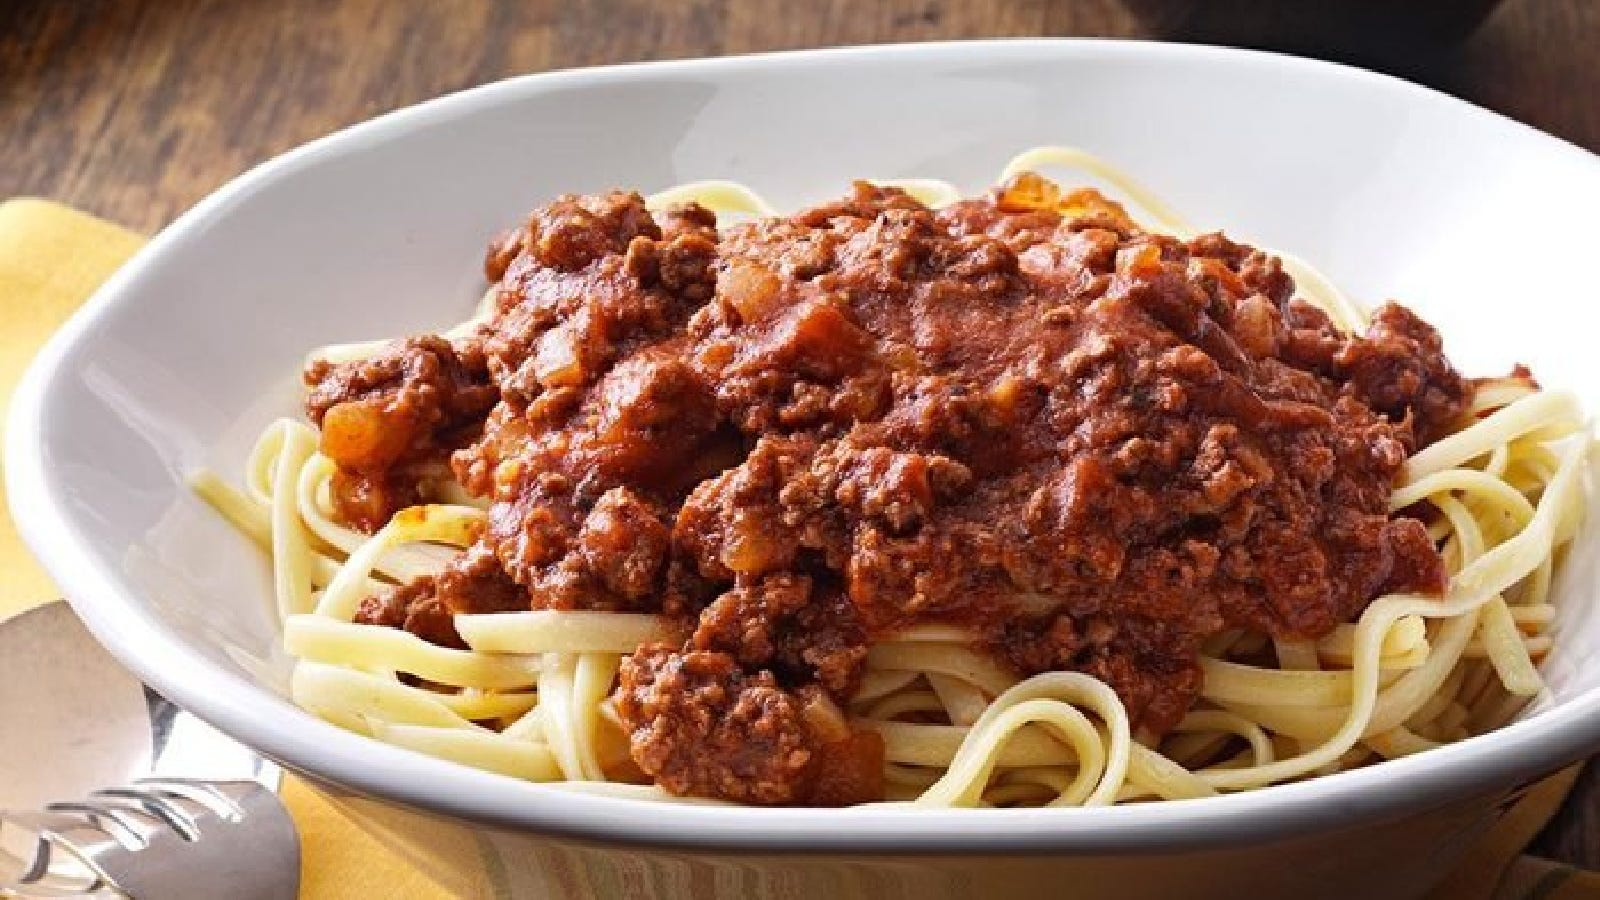 a plate of spaghetti toppe with homemade sauce.